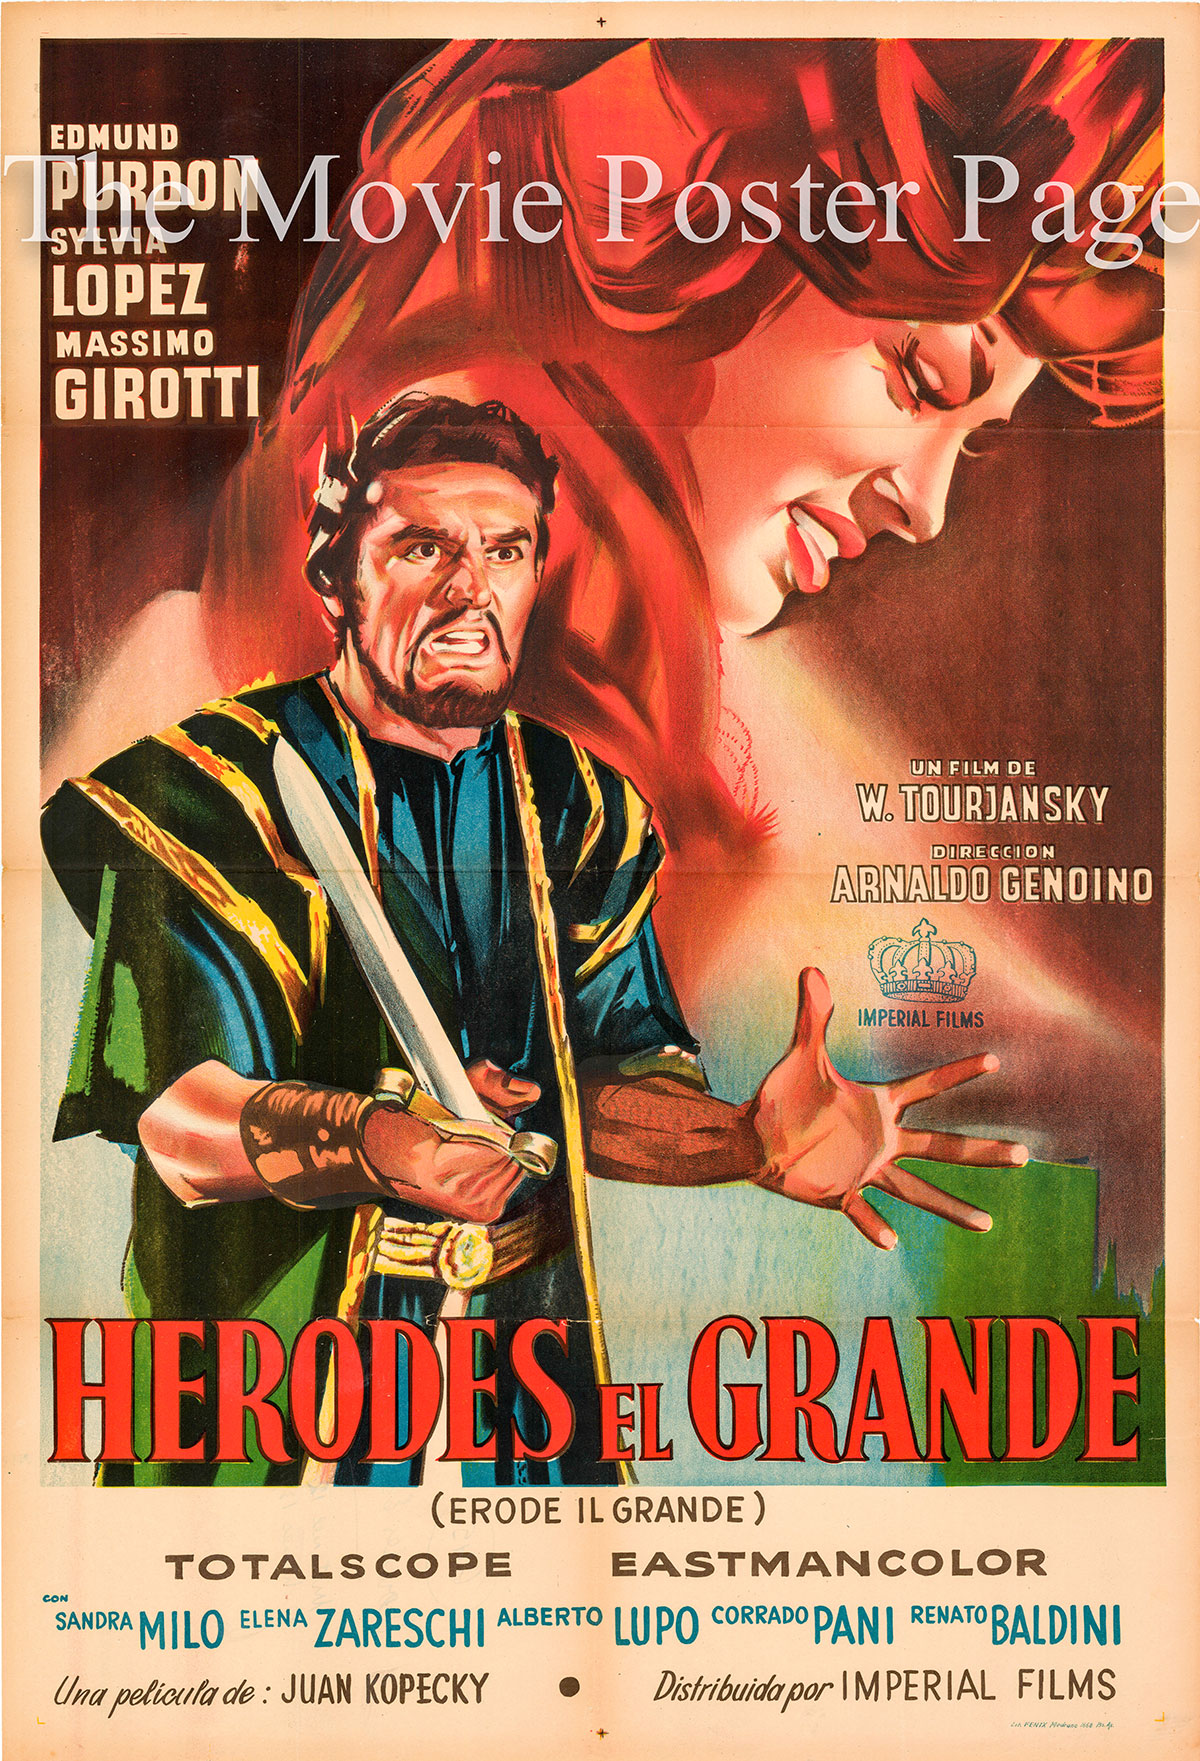 Pictured is an Argentine one-sheet poster for the 1958 Viktor Tourjansky film Herod the Great starring Edmund Purdom as Herod.